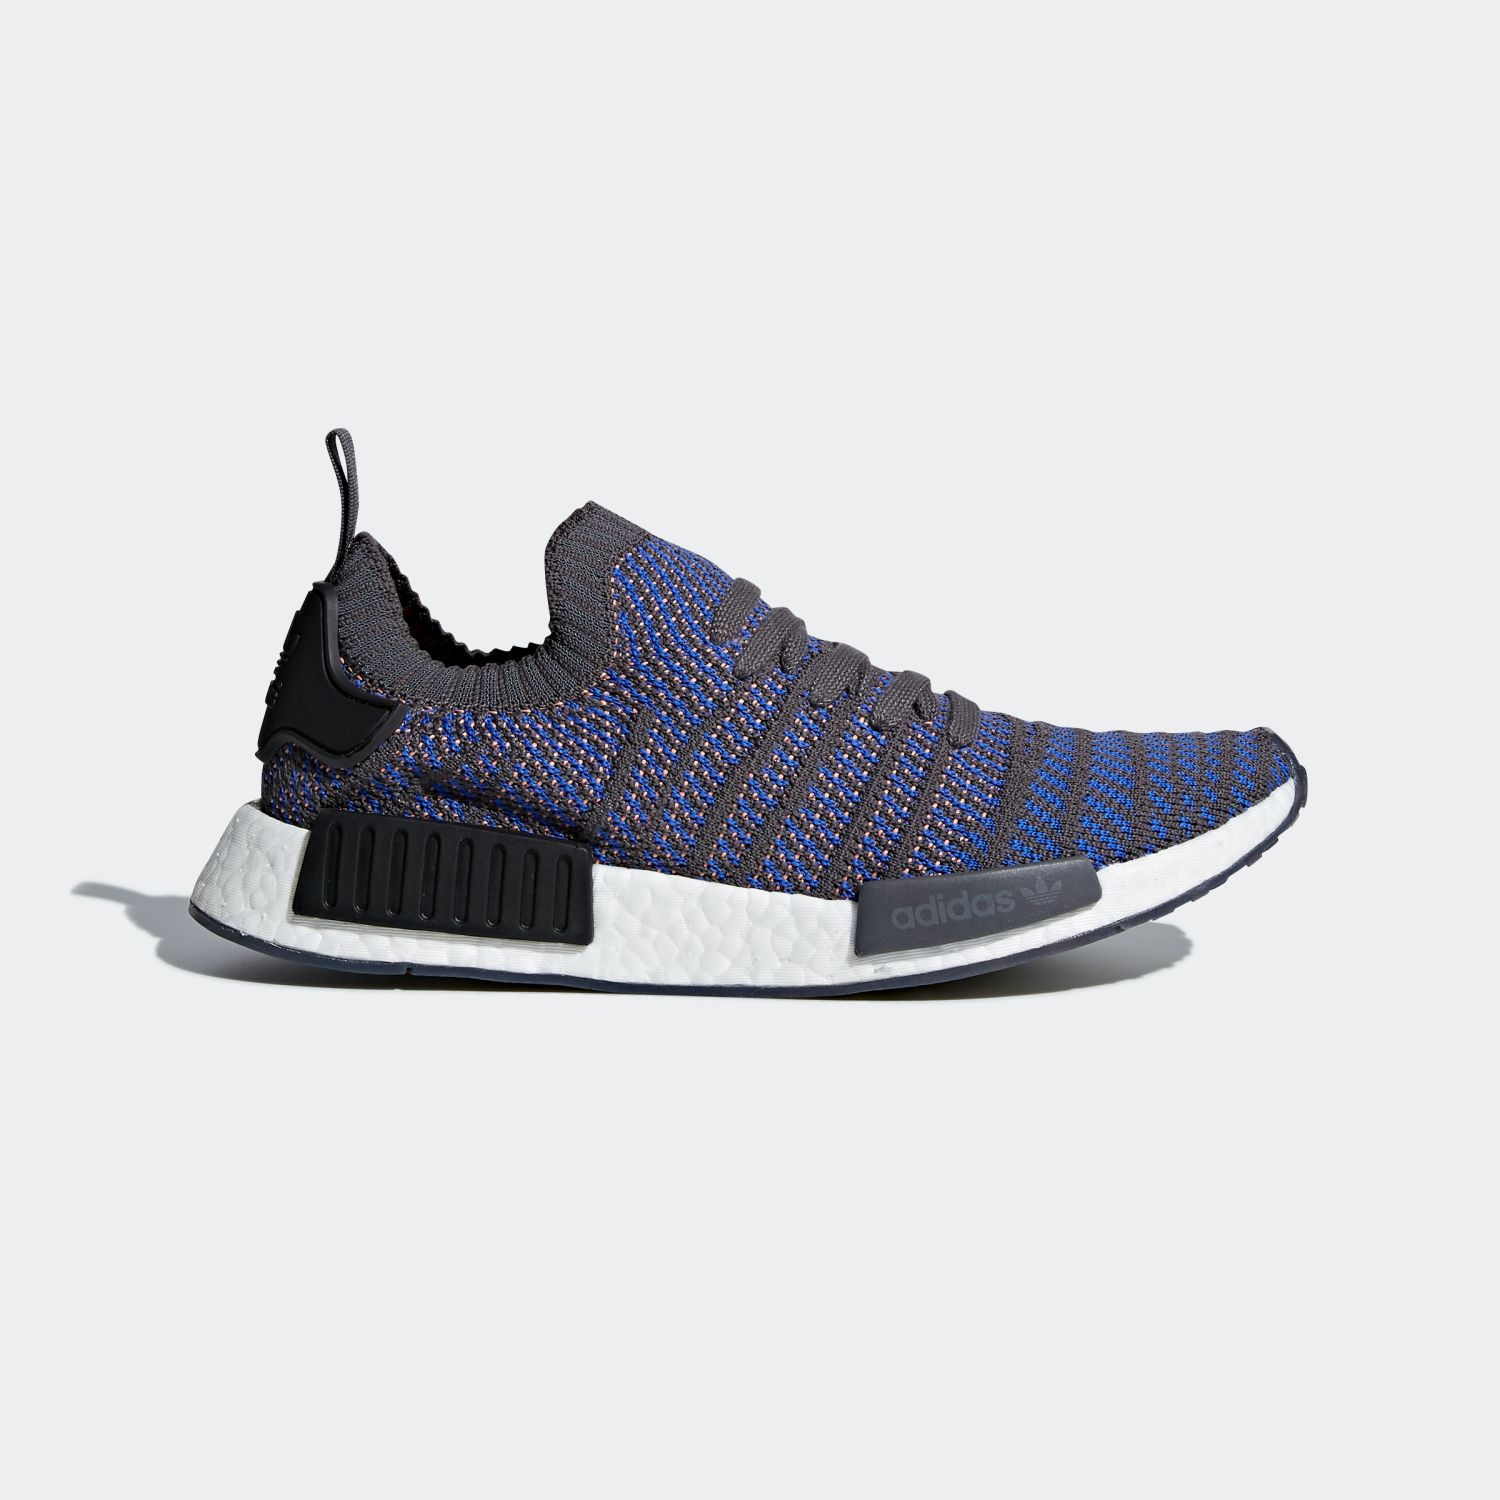 NMD R1 STLT High Resolution Blue